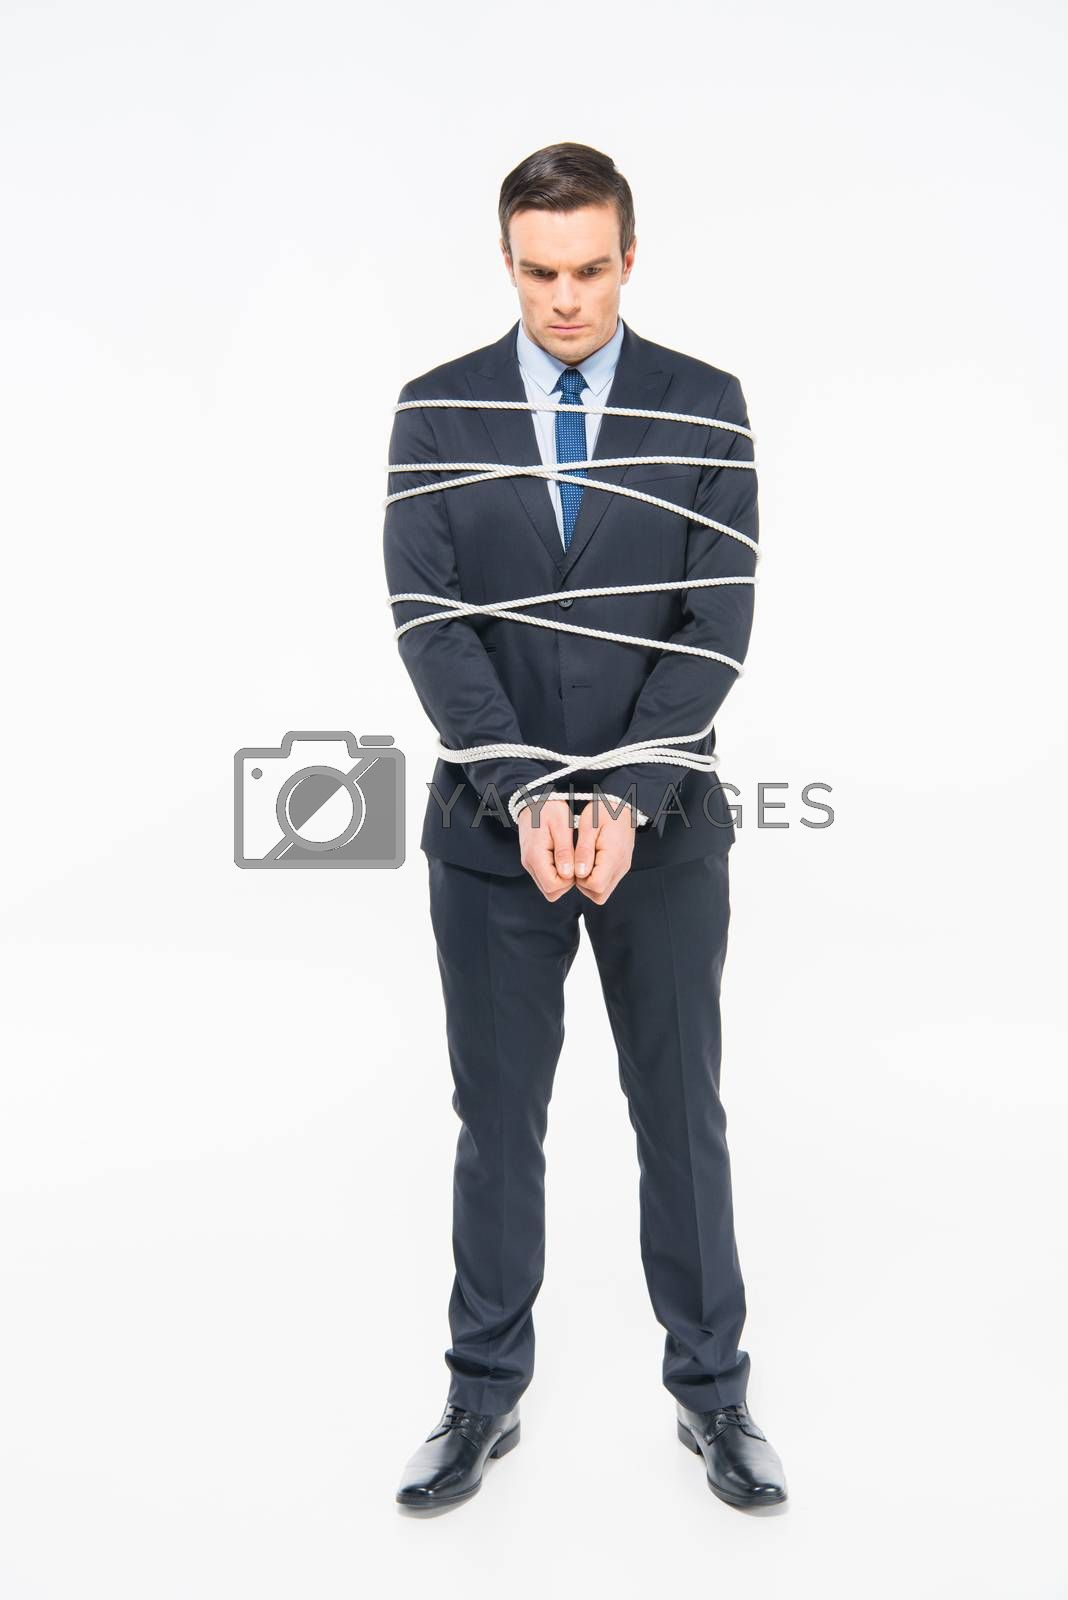 Sad young roped businessman on white